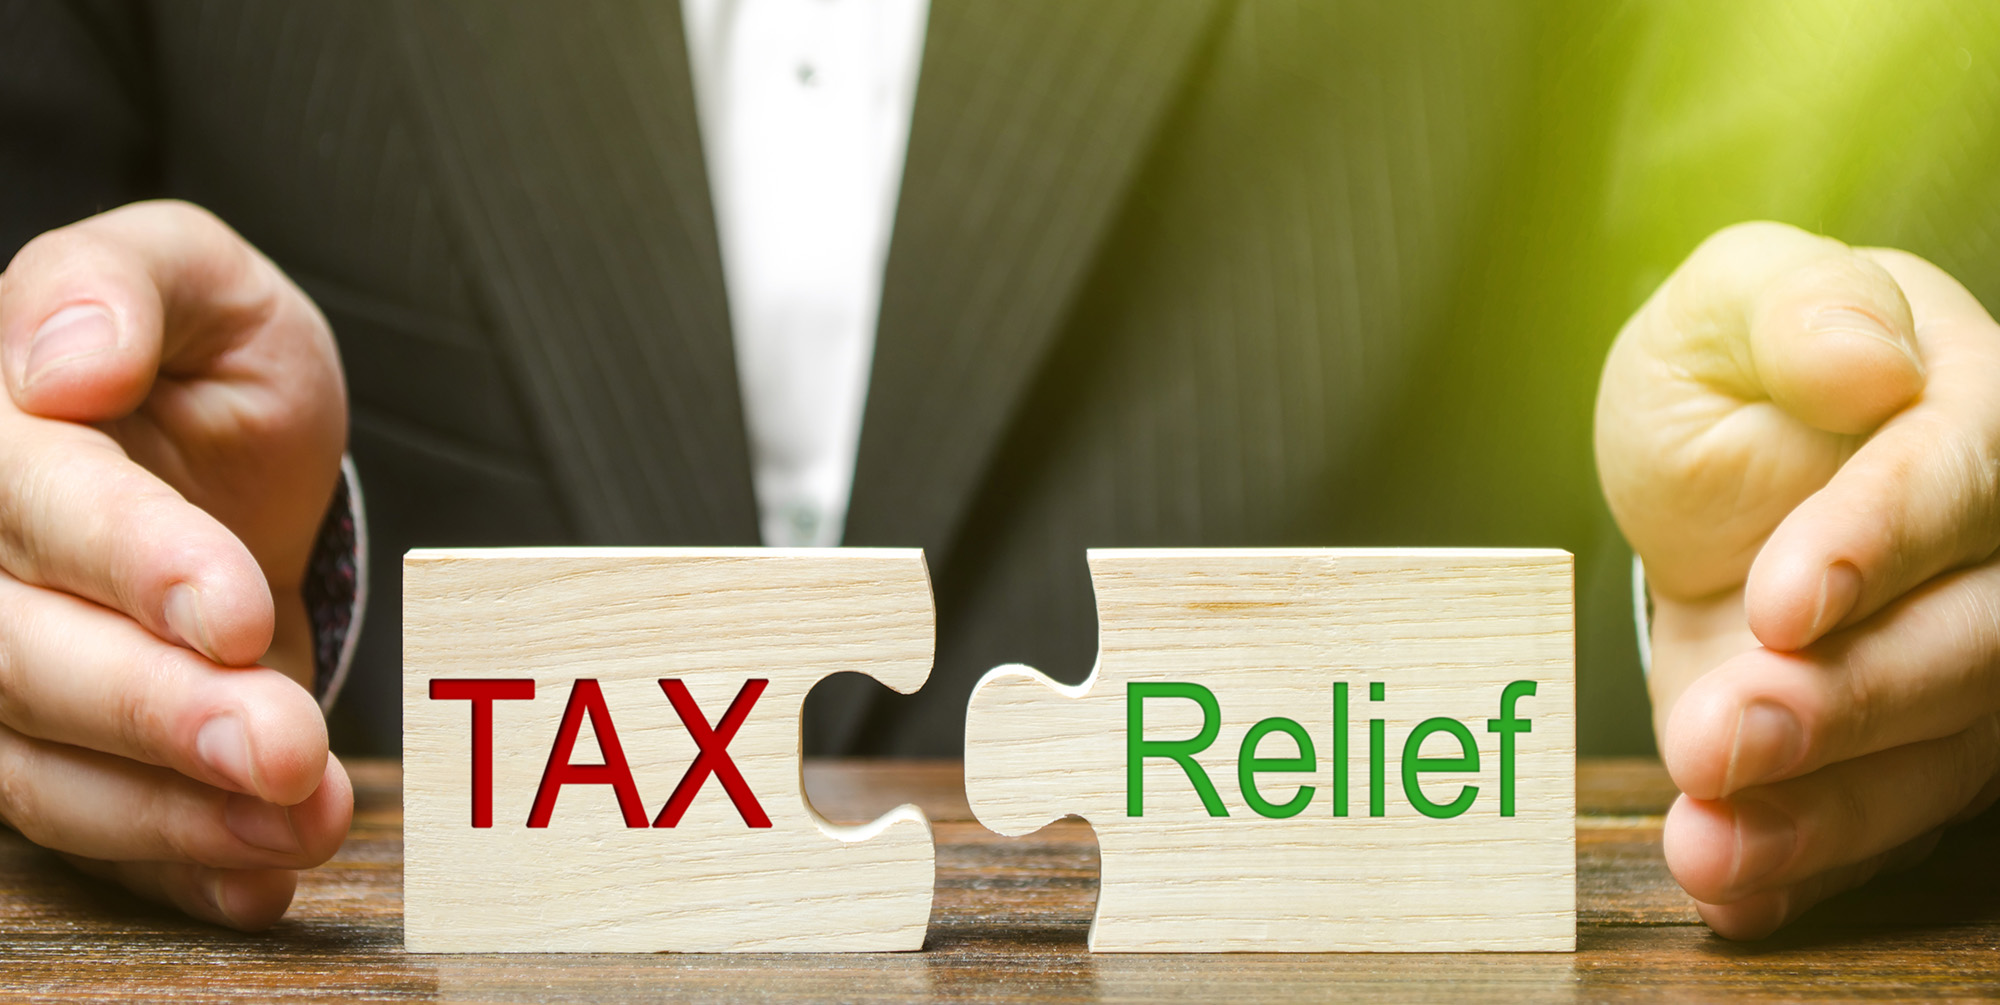 Important IRS Tax Relief Update